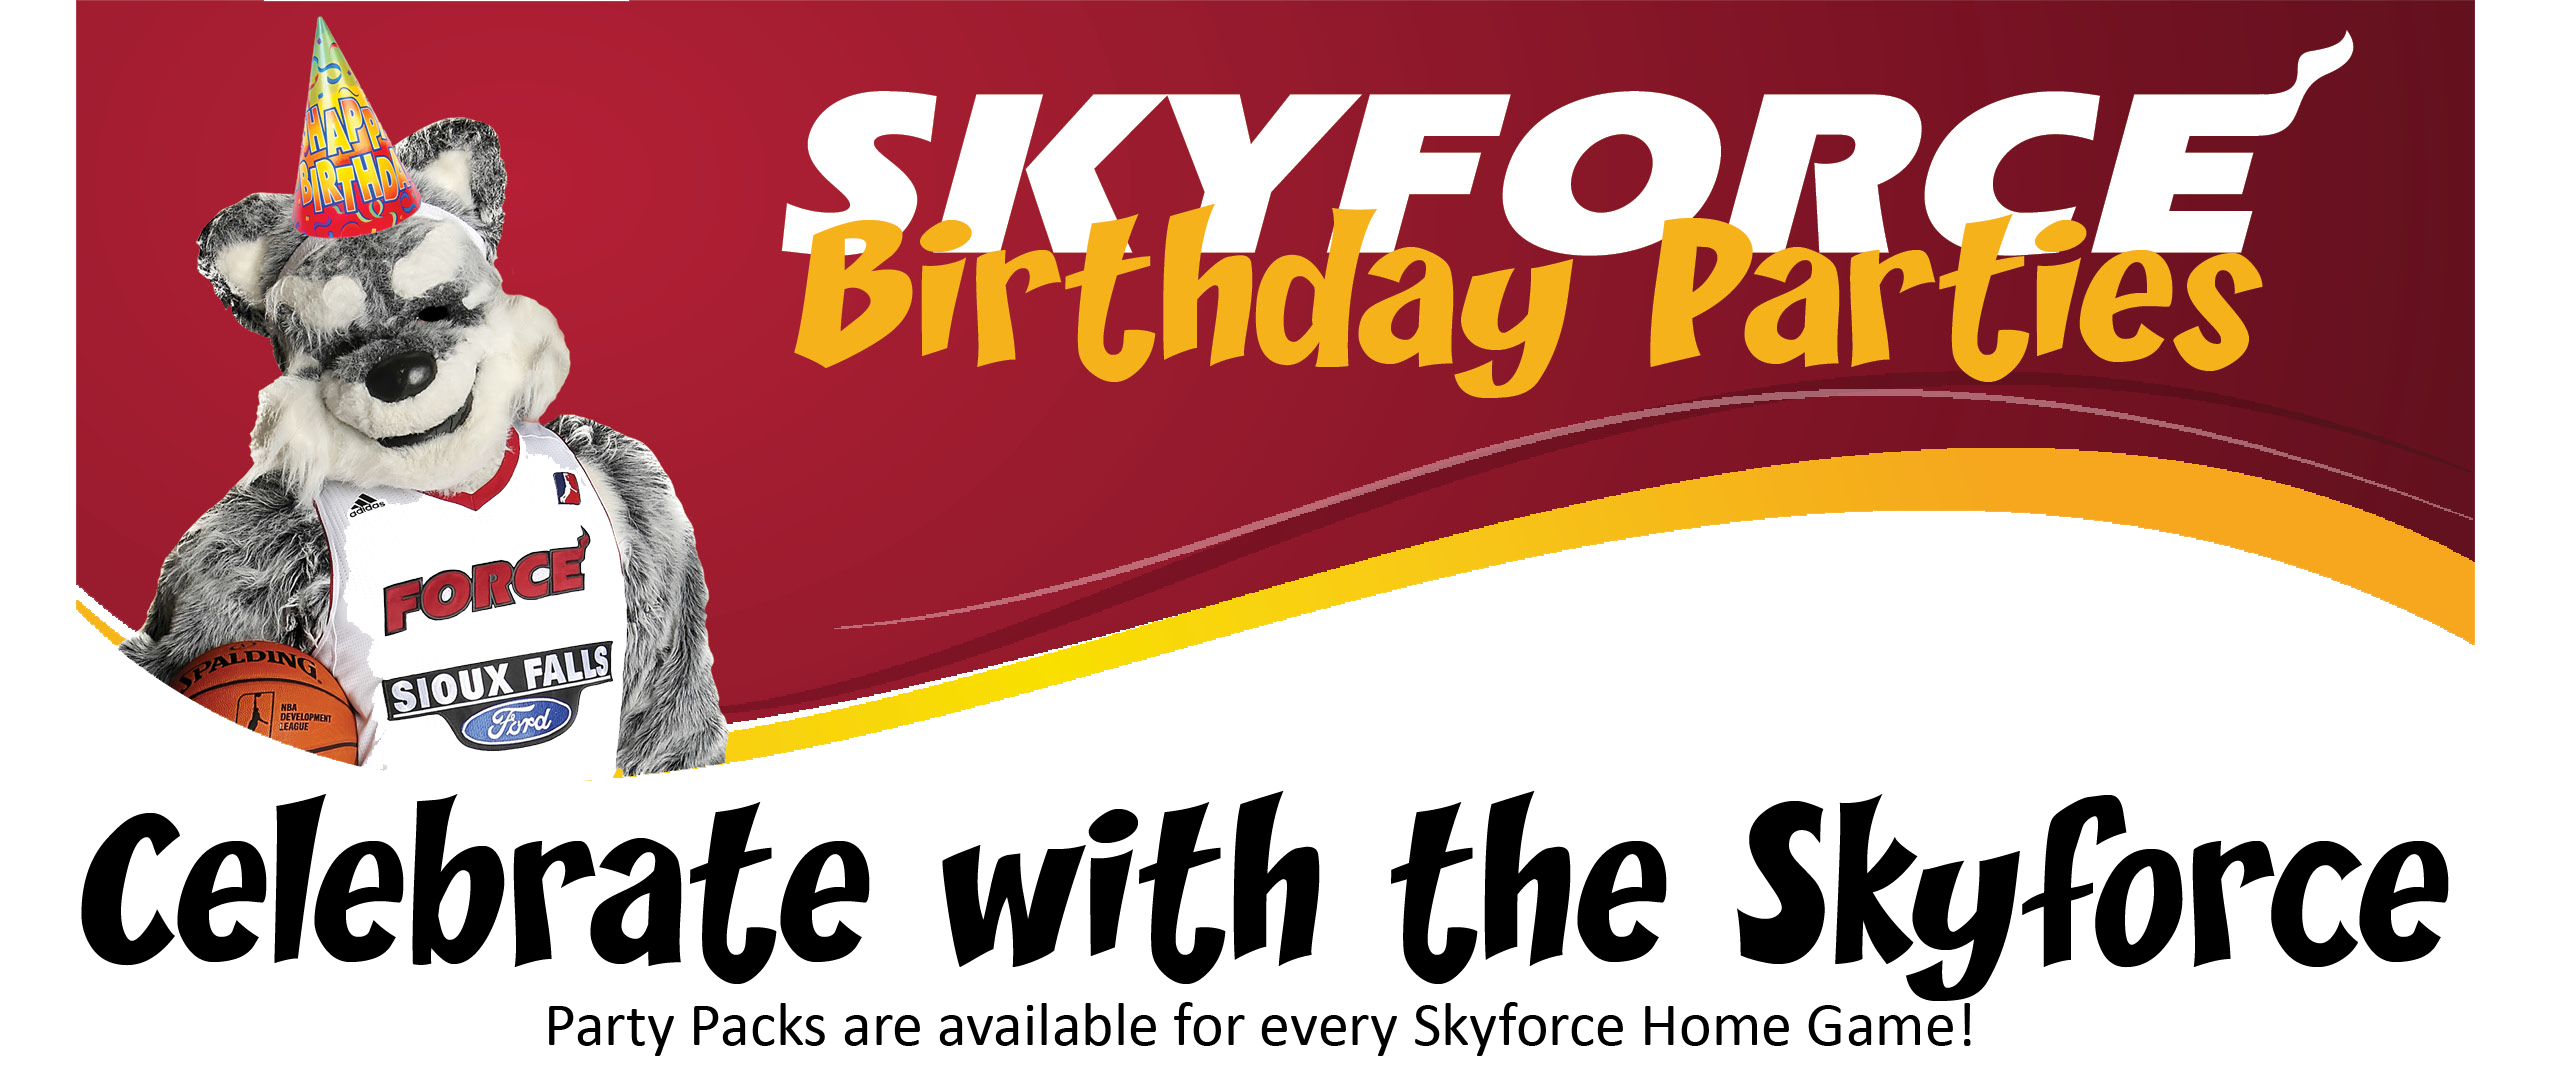 Skyforce Birthday Party Packs are available for every Skyforce home game... Come Celebrate with the Skyforce!